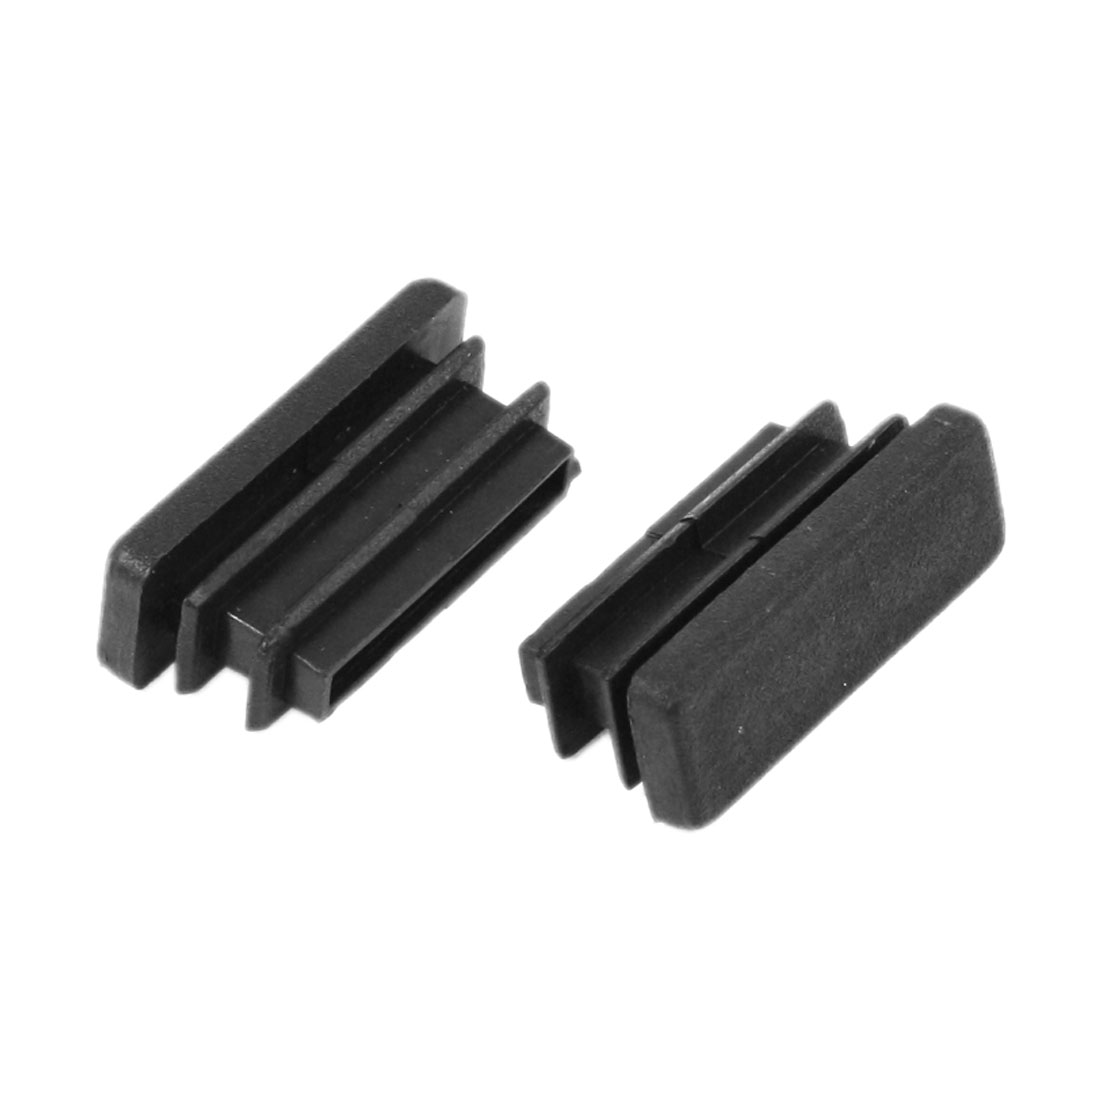 2 Pieces Black Plastic Square Blanking End Caps Tubing Tube Inserts 10mm x 30mm